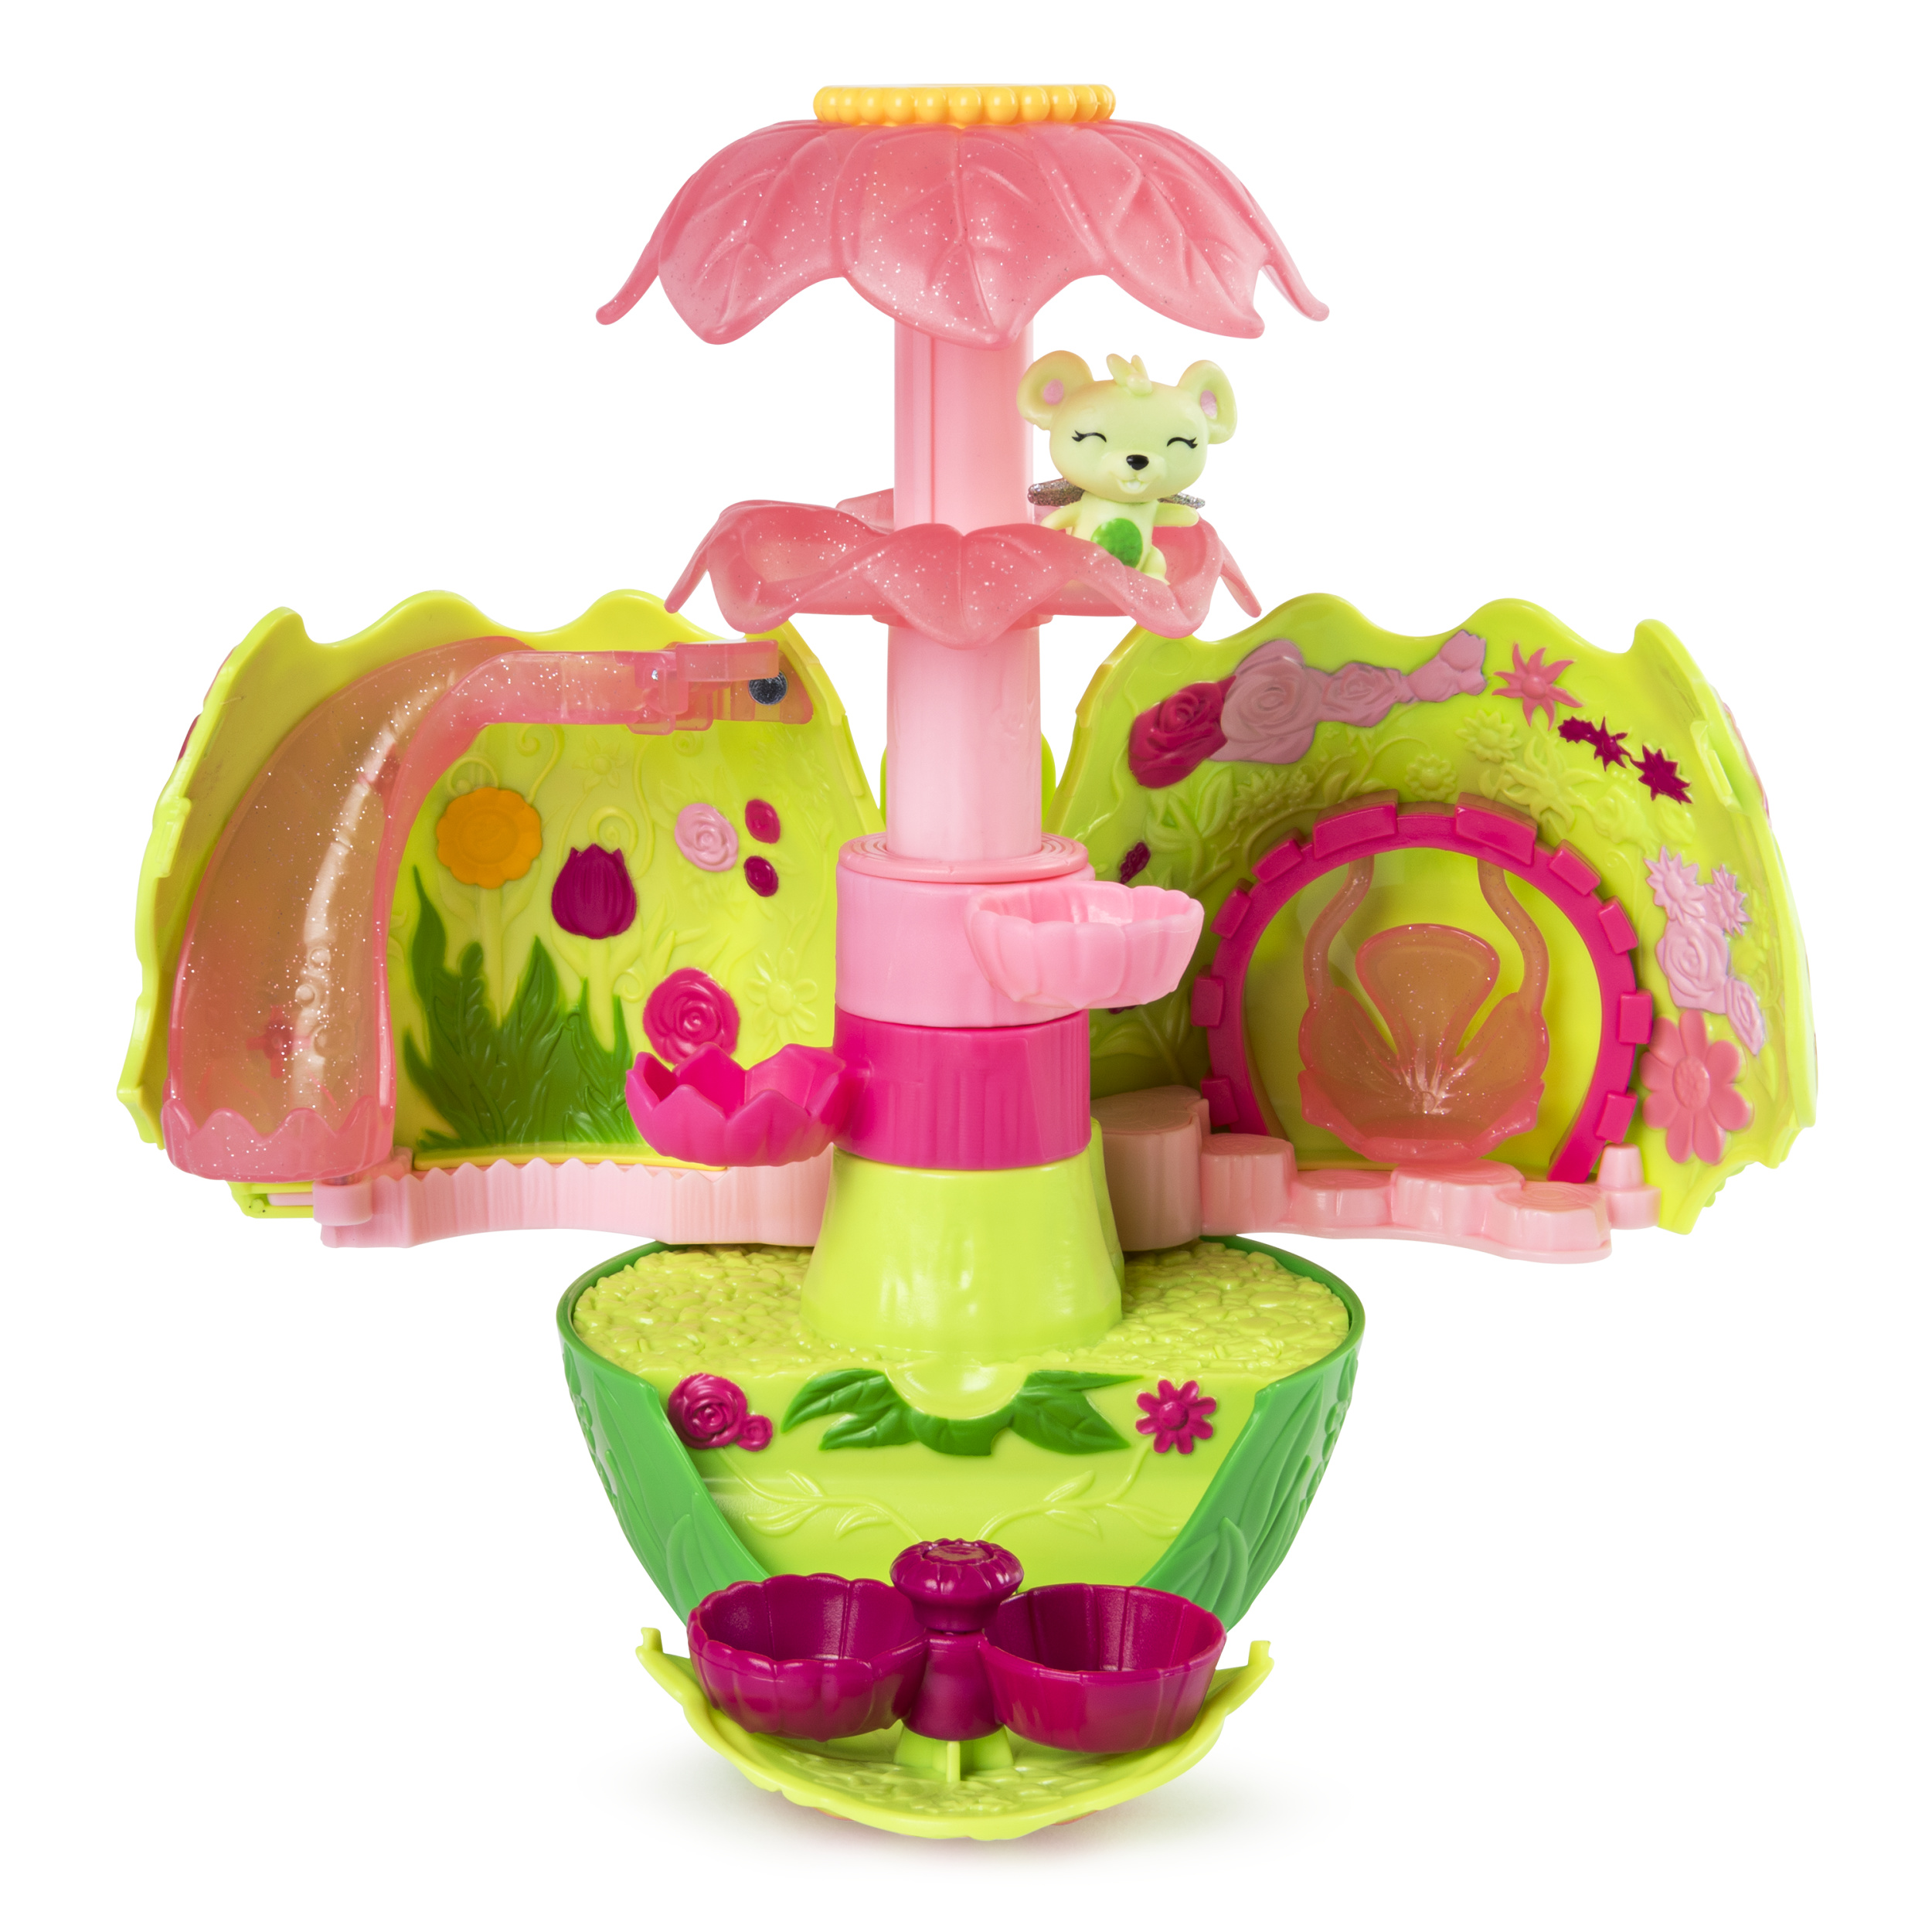 Hatchimals ‐ Secret Scene Playset for Hatchimals CollEGGtibles (Styles May Vary)